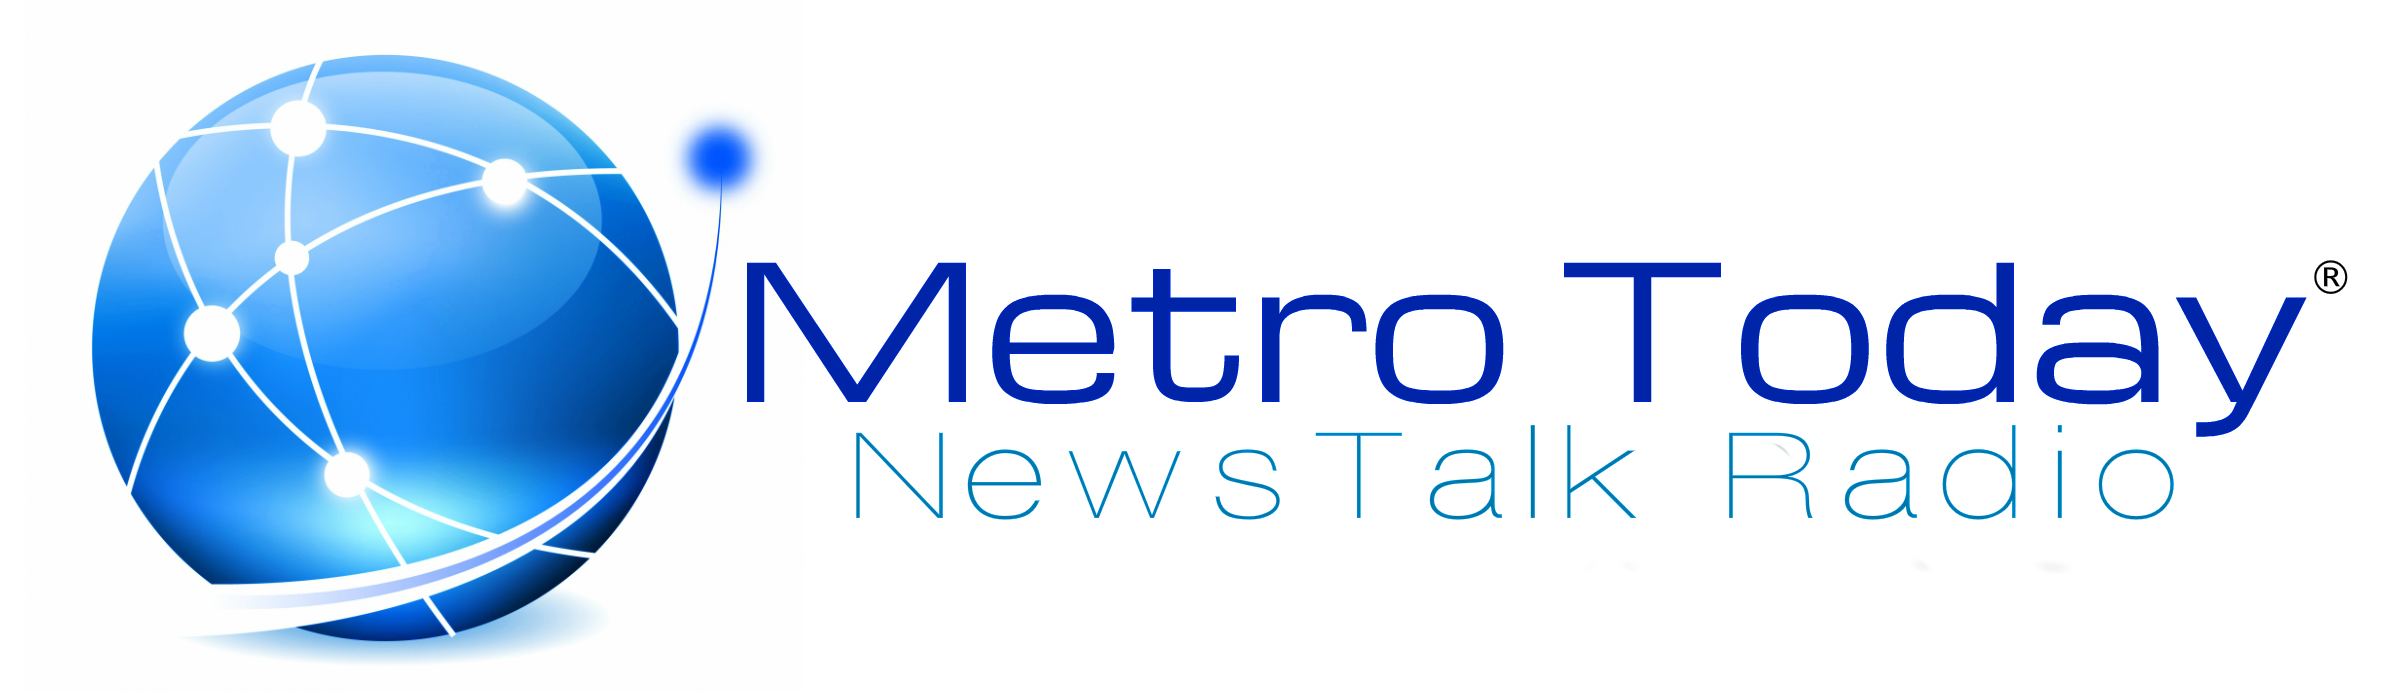 Metro Today NewsTalk Radio